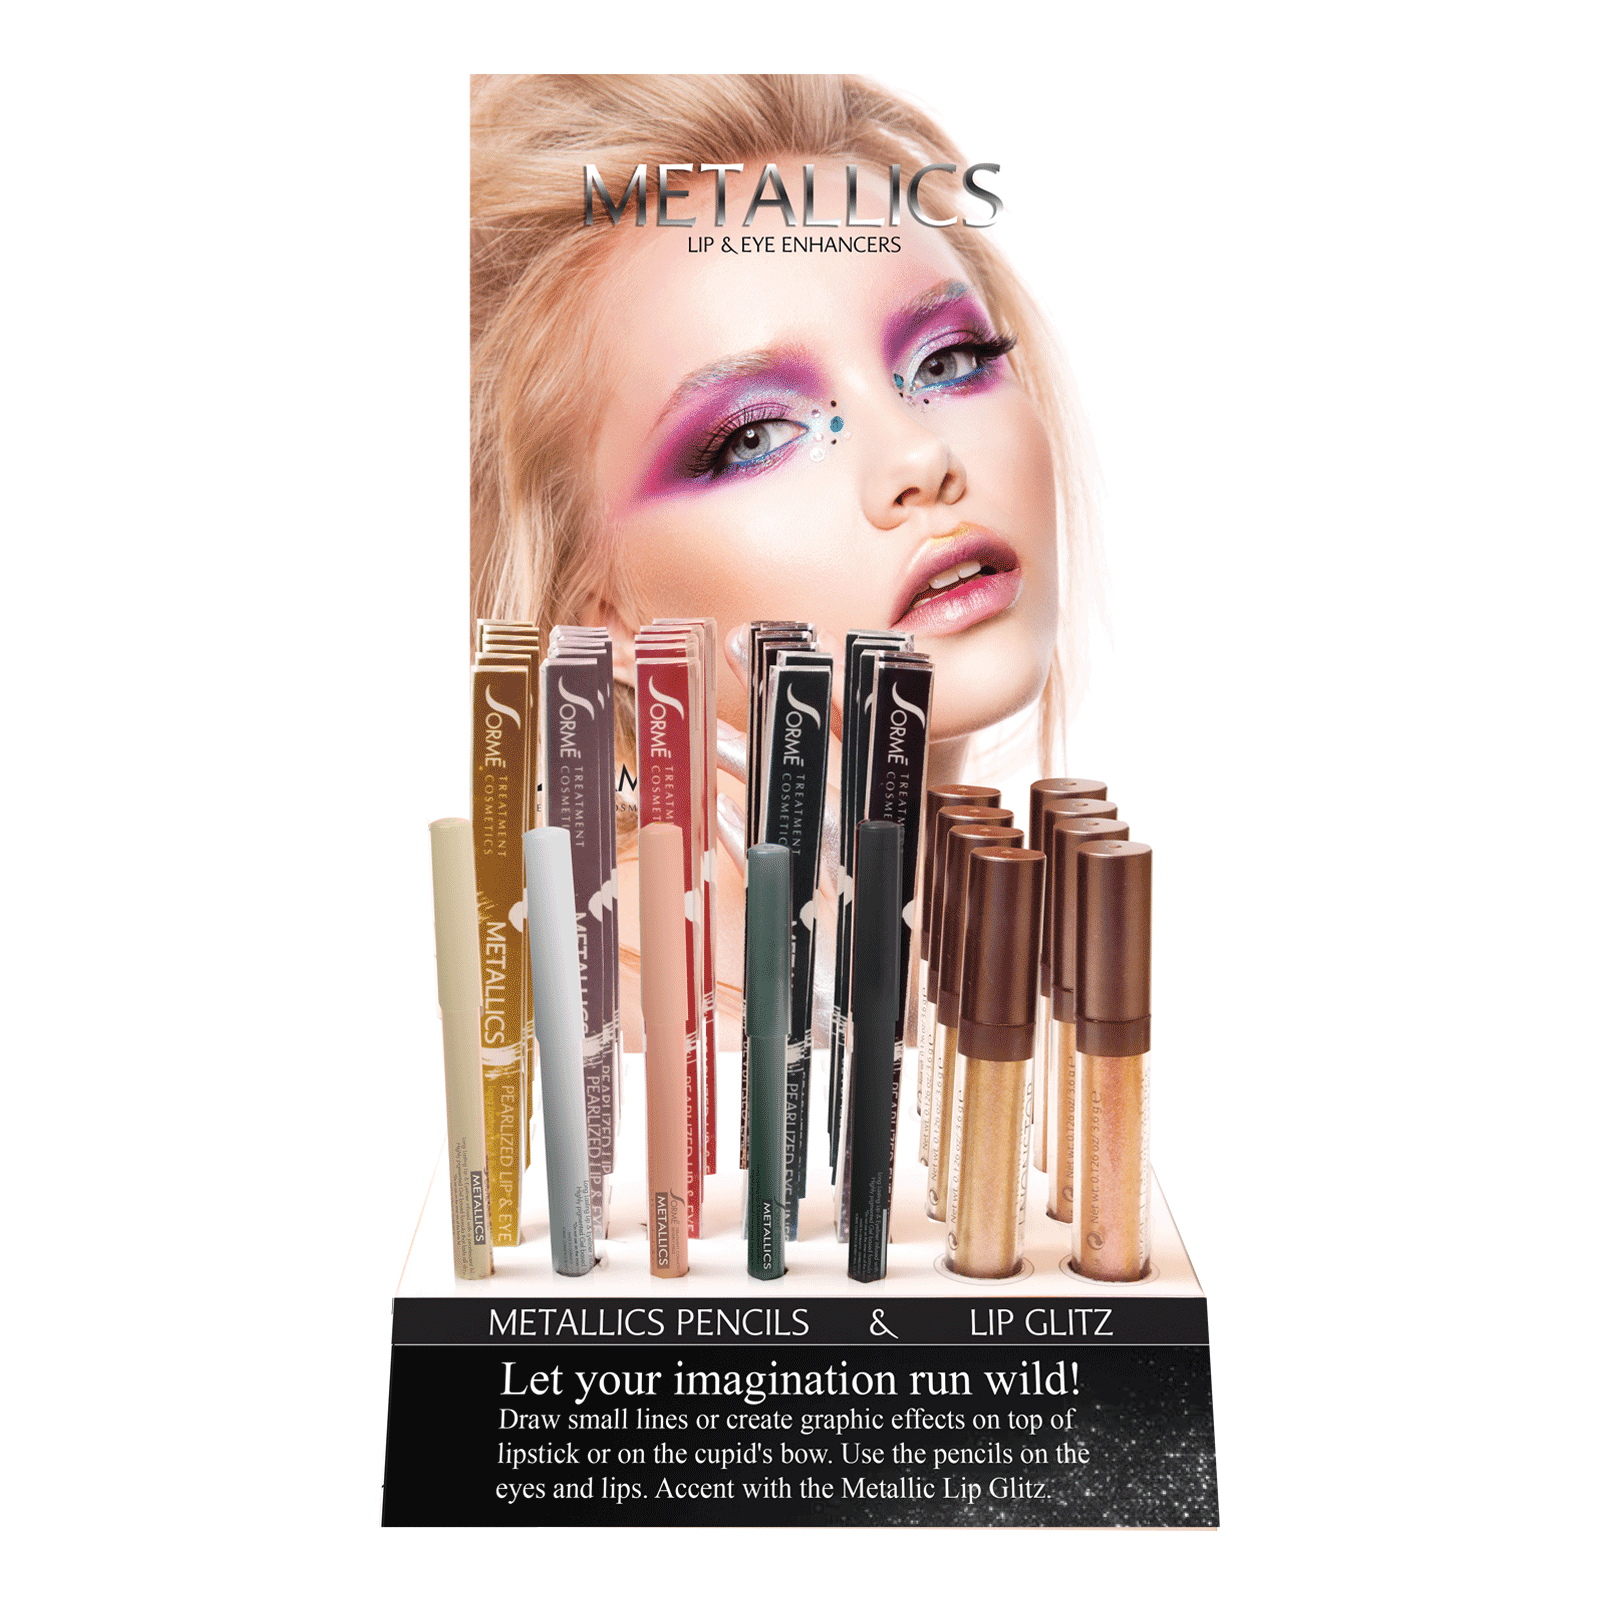 Pearlized Lip & EyeLiner, Lip Shimmer - 38 Count Display